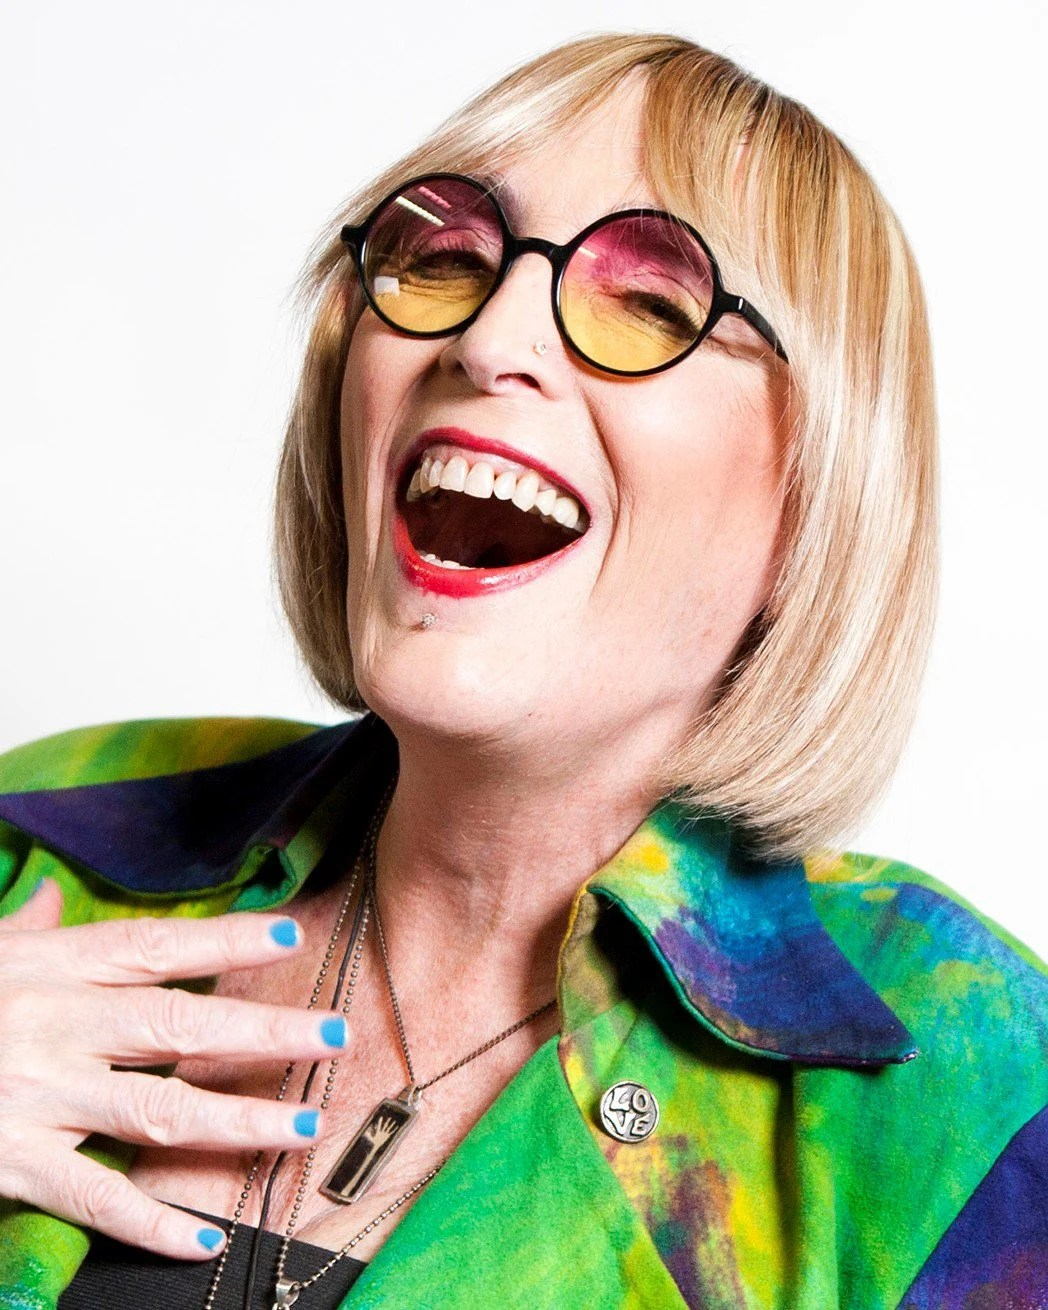 Interview Kate Bornstein on Their Broadway Debut in